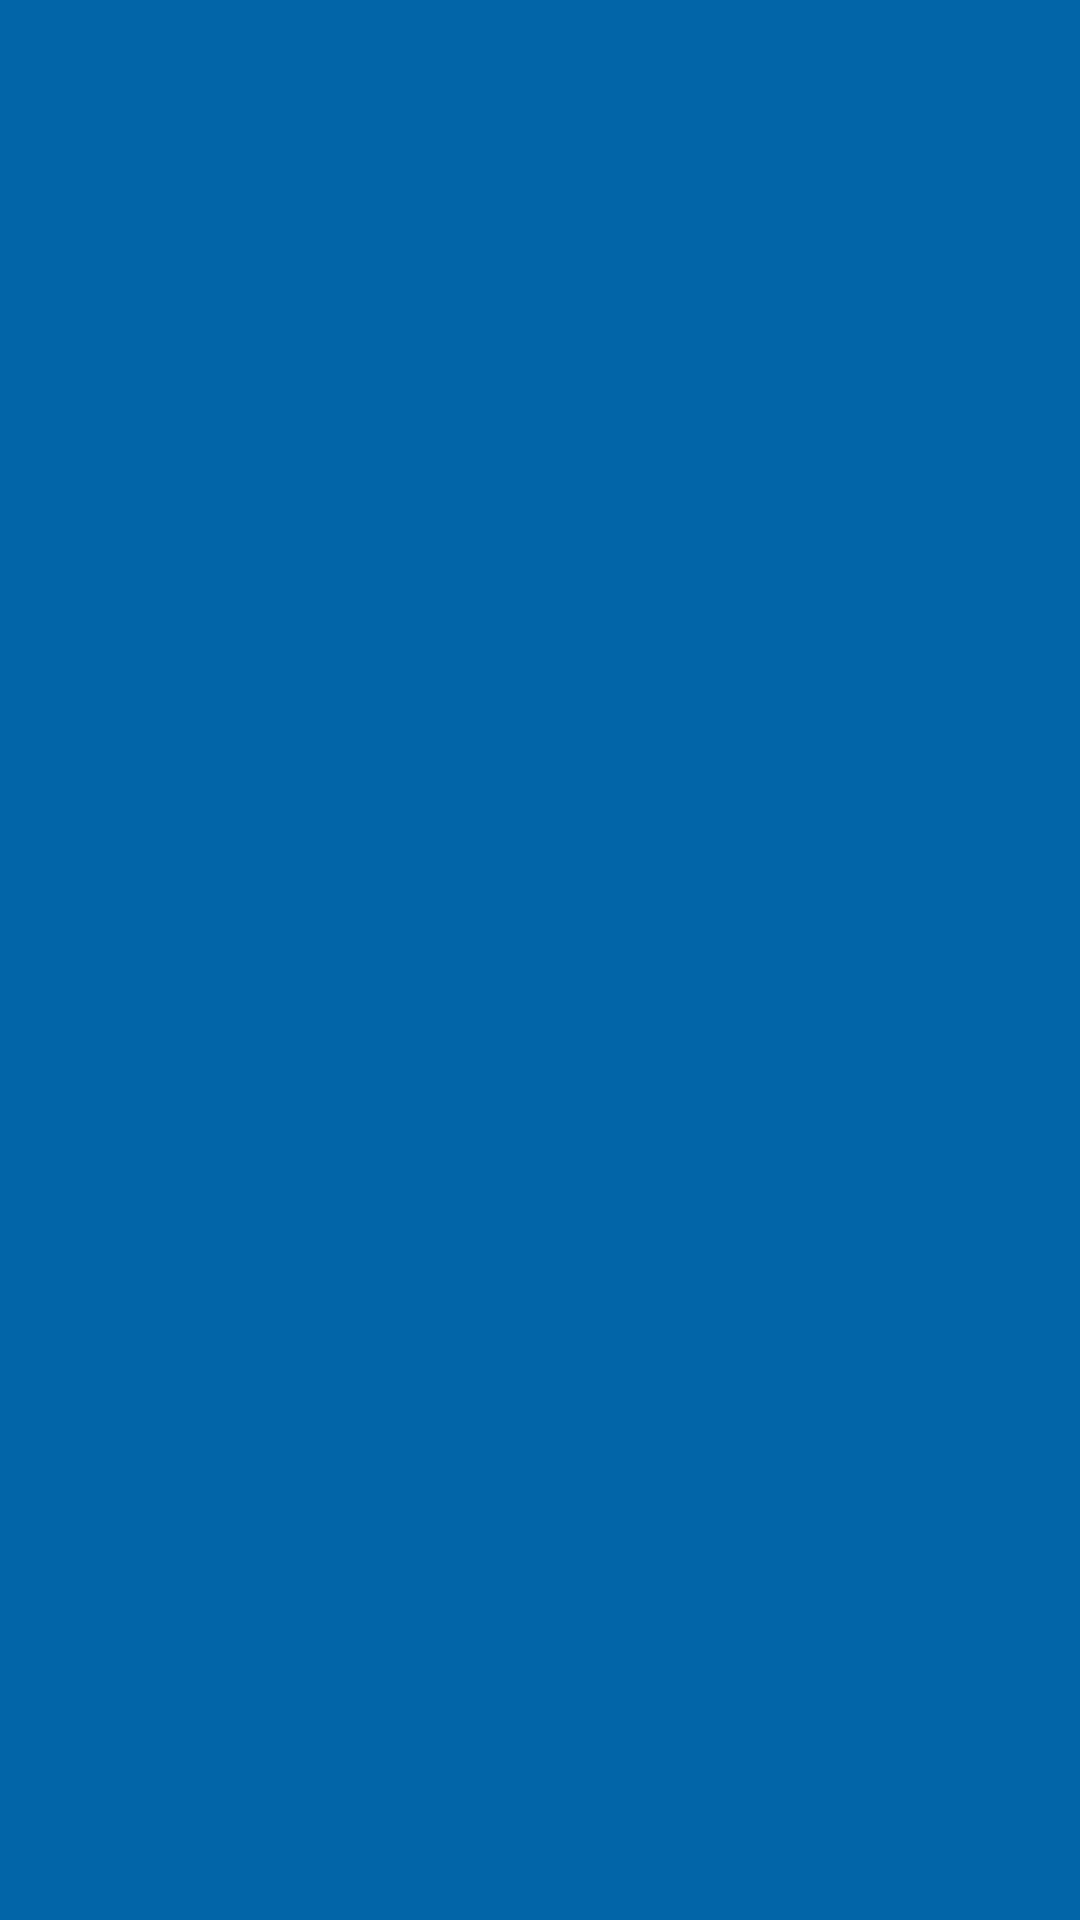 1080x1920 Sapphire Blue Solid Color Background